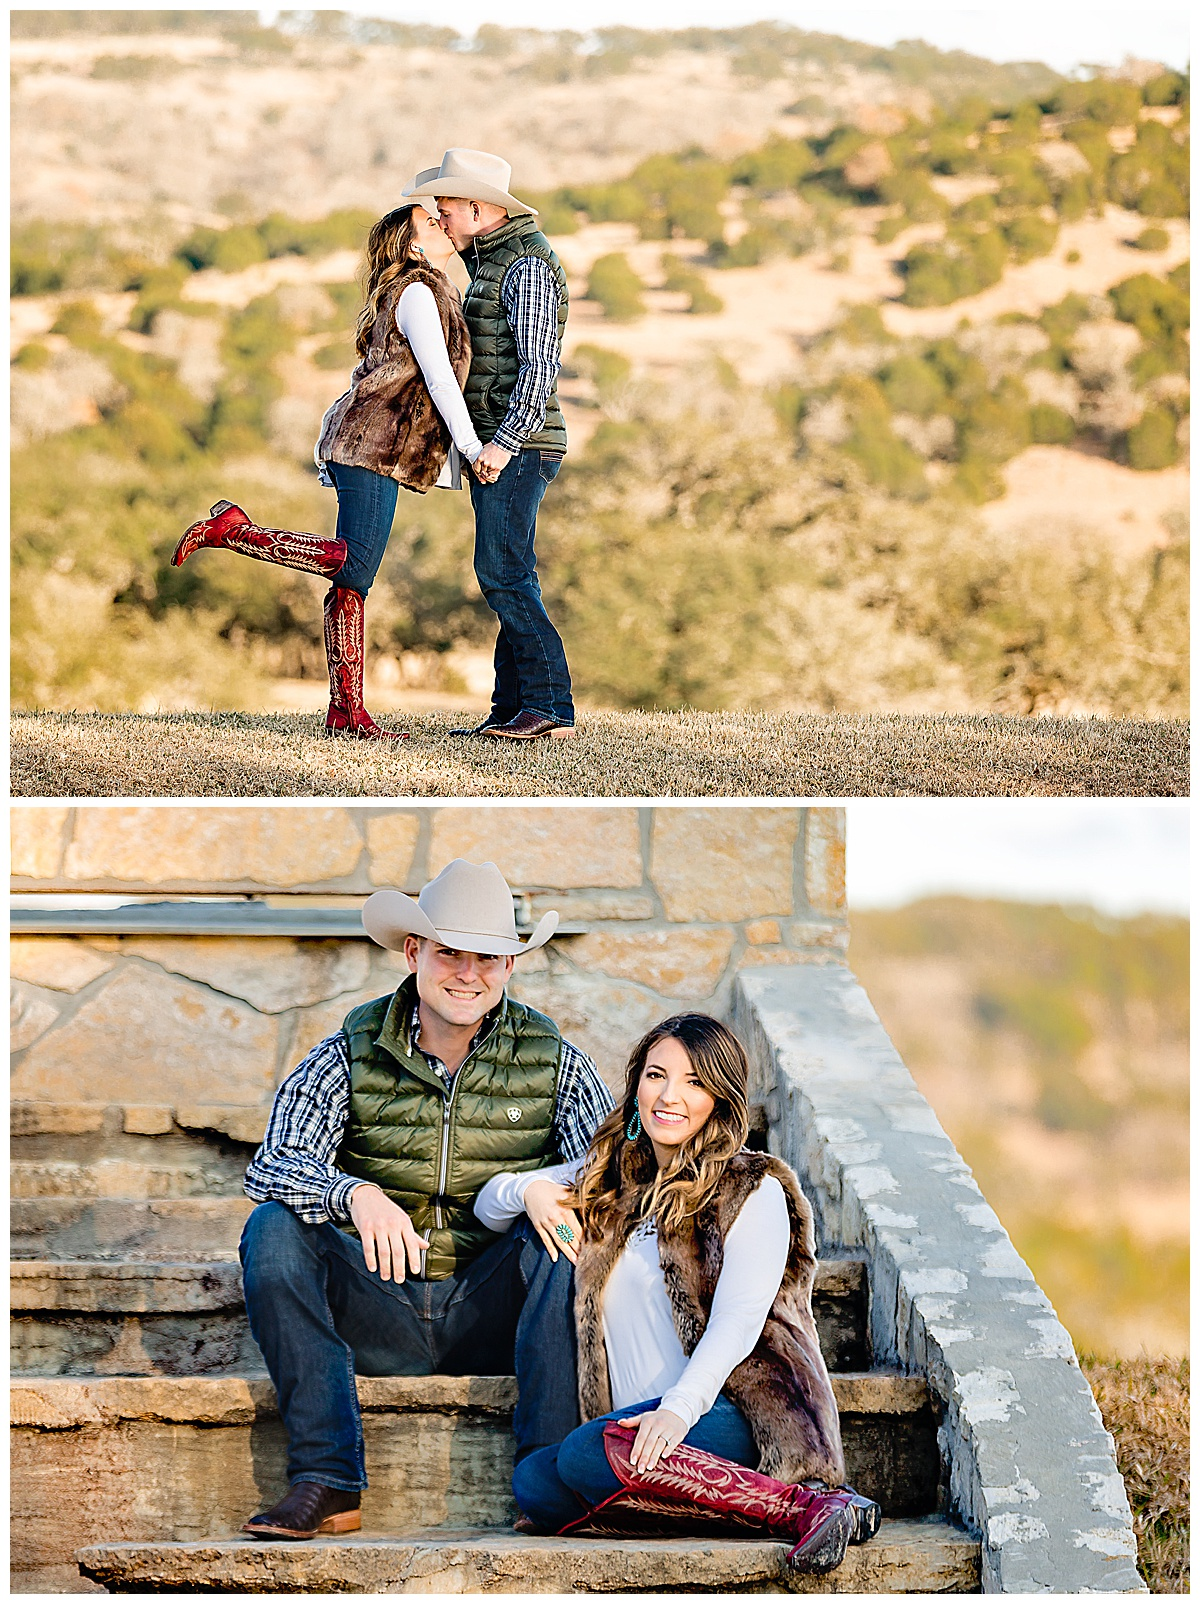 South-Texas-Wedding-Photographer-Engagement-Photos-Happy-H-Ranch-Comfort-Texas-Sunset-Couples-Carly-Barton-Photography-Justin-Erica_0004.jpg